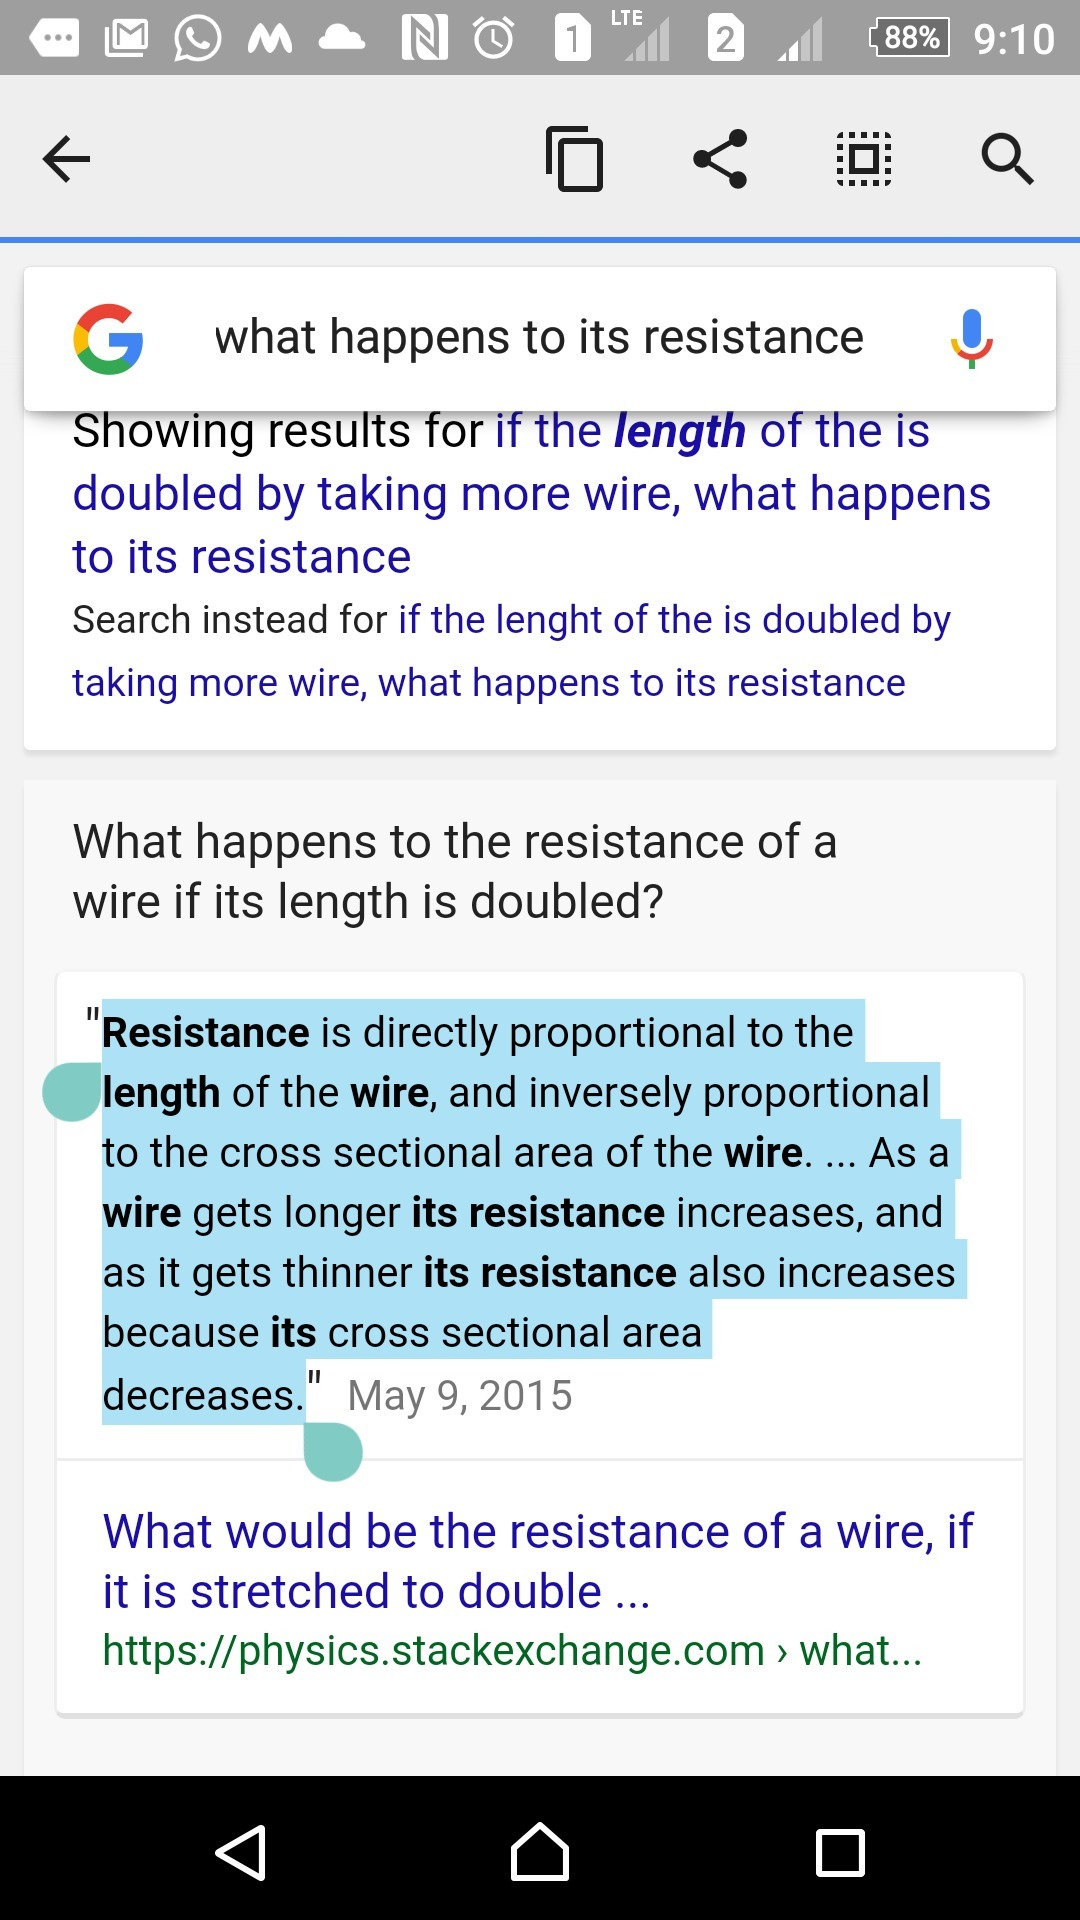 If the length of the wire is doubled by taking more of wire, what ...